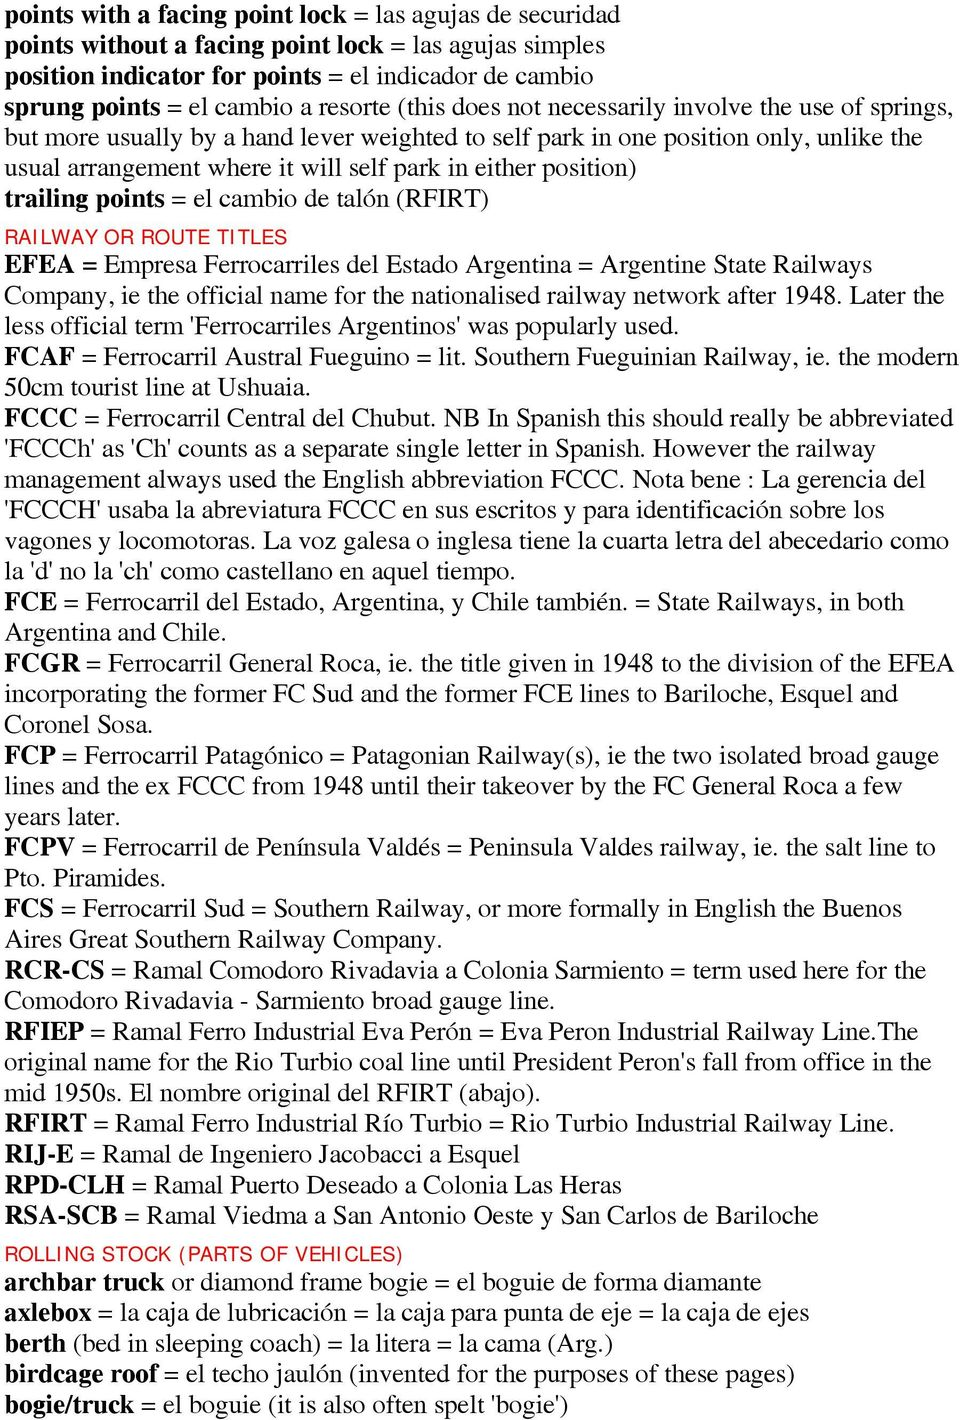 either position) trailing points = el cambio de talón (RFIRT) RAILWAY OR ROUTE TITLES EFEA = Empresa Ferrocarriles del Estado Argentina = Argentine State Railways Company, ie the official name for